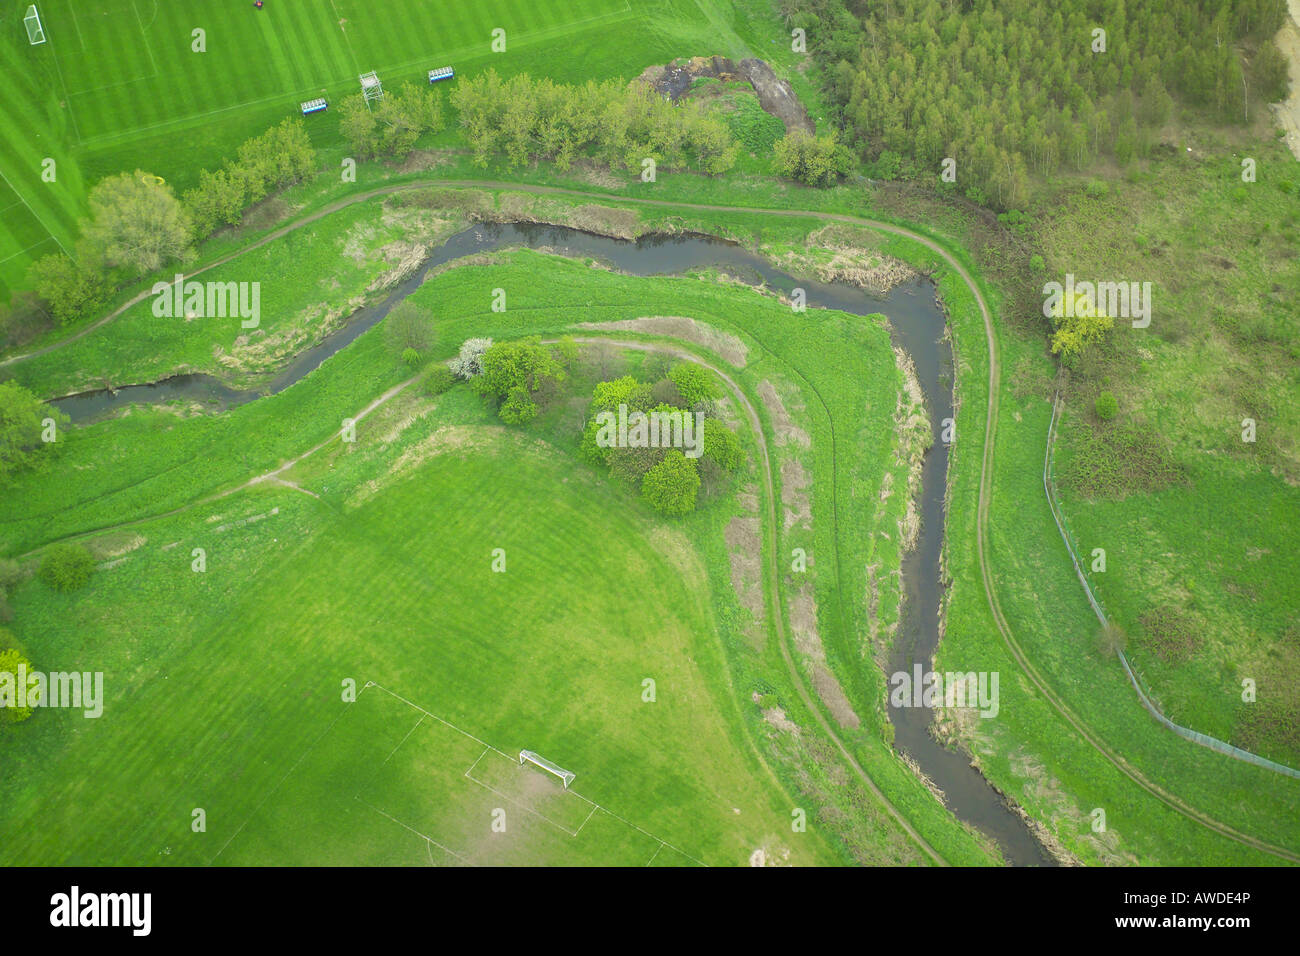 Aerial view of a bend in a river as it winds through the countryside Stock Photo